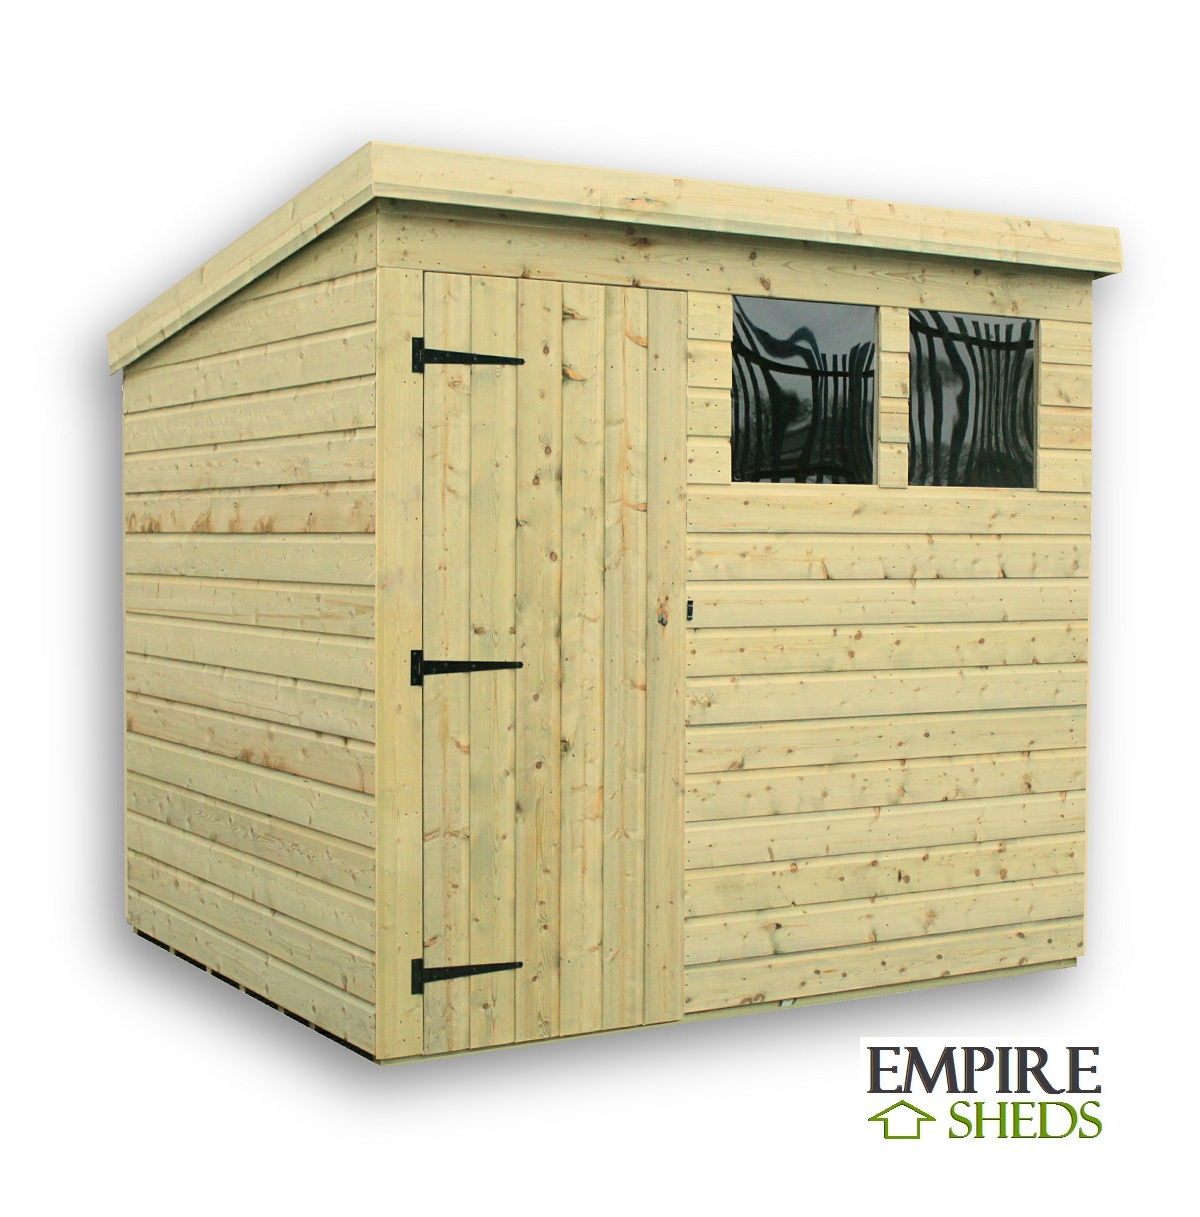 garden sheds 6 x 2 brilliant garden sheds 9x6 pent roof wooden shed bike with inspiration - Garden Sheds 9x6